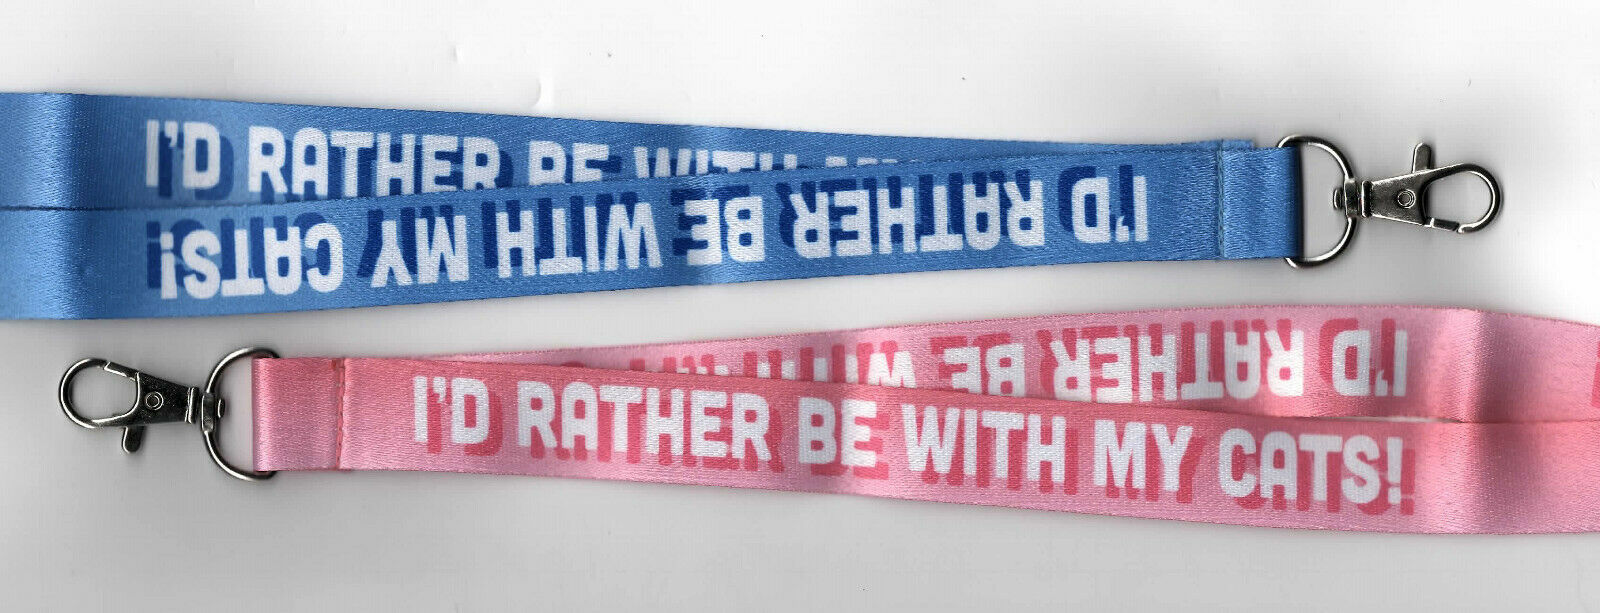 1 x I'D RATHER BE WITH MY CATS Breakaway Safety Lanyard Pink or Blue FREE UK P&P